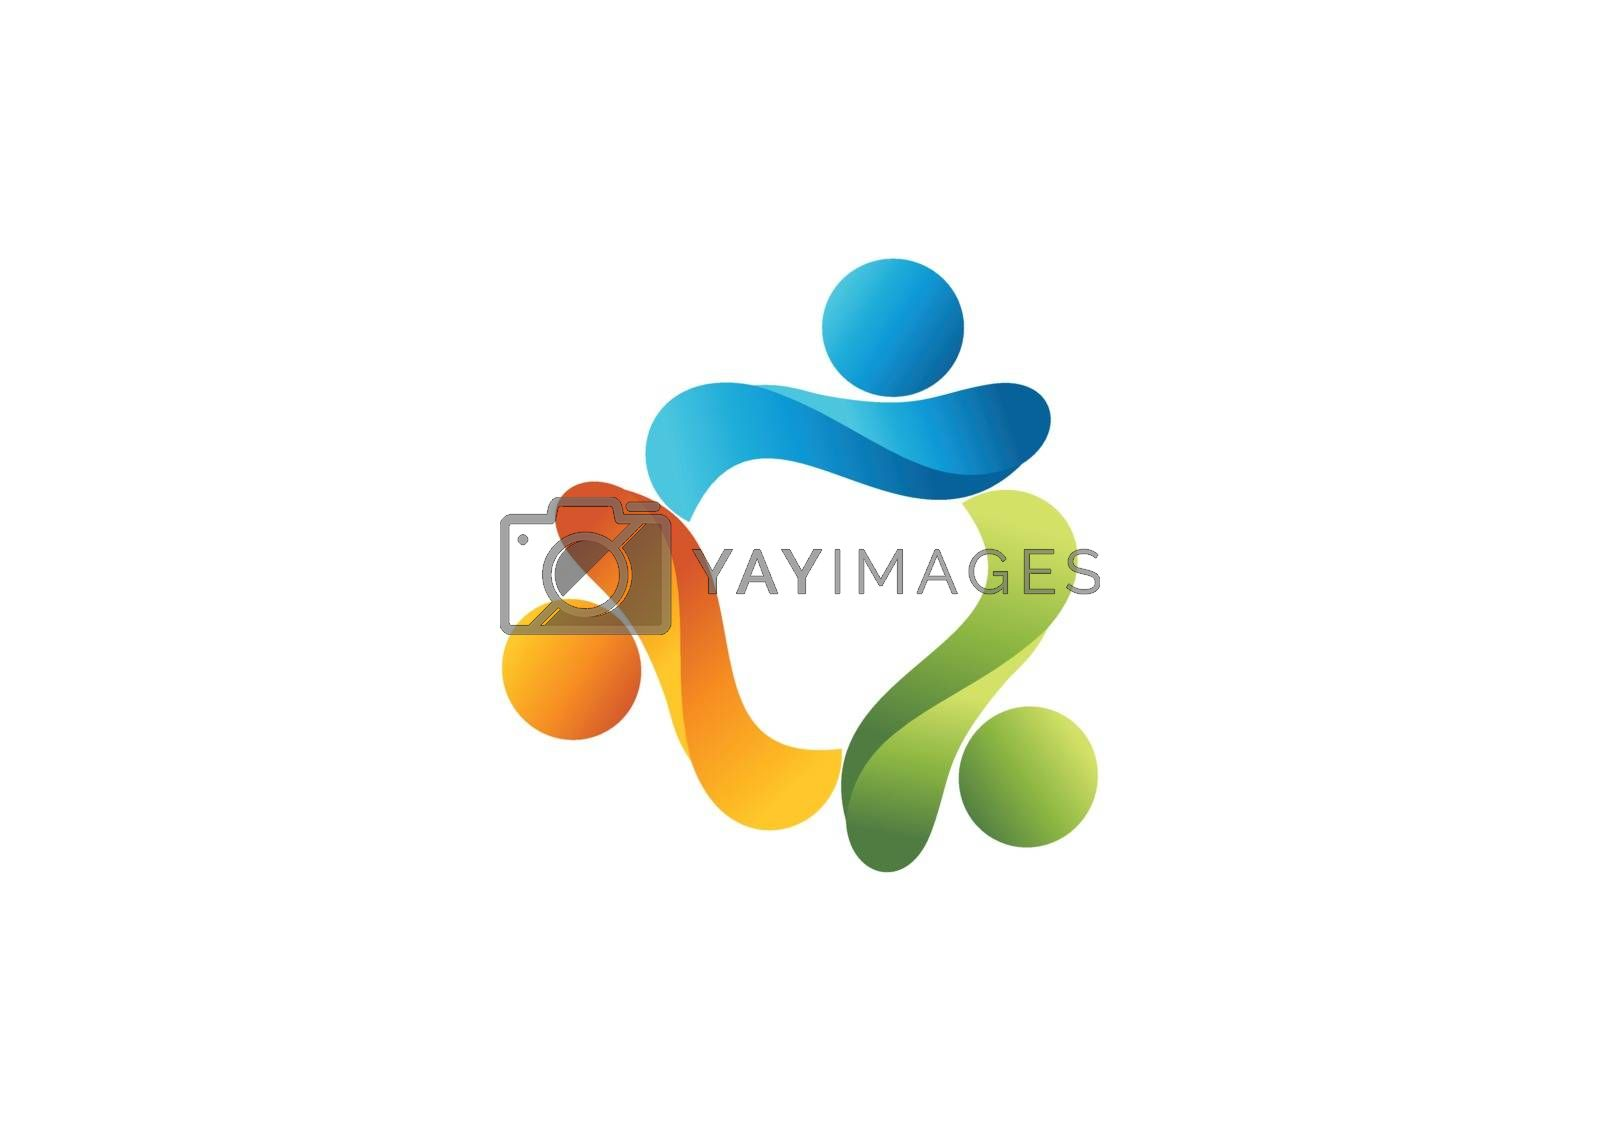 an graphic represent teamwork logo design template isolated in white background.